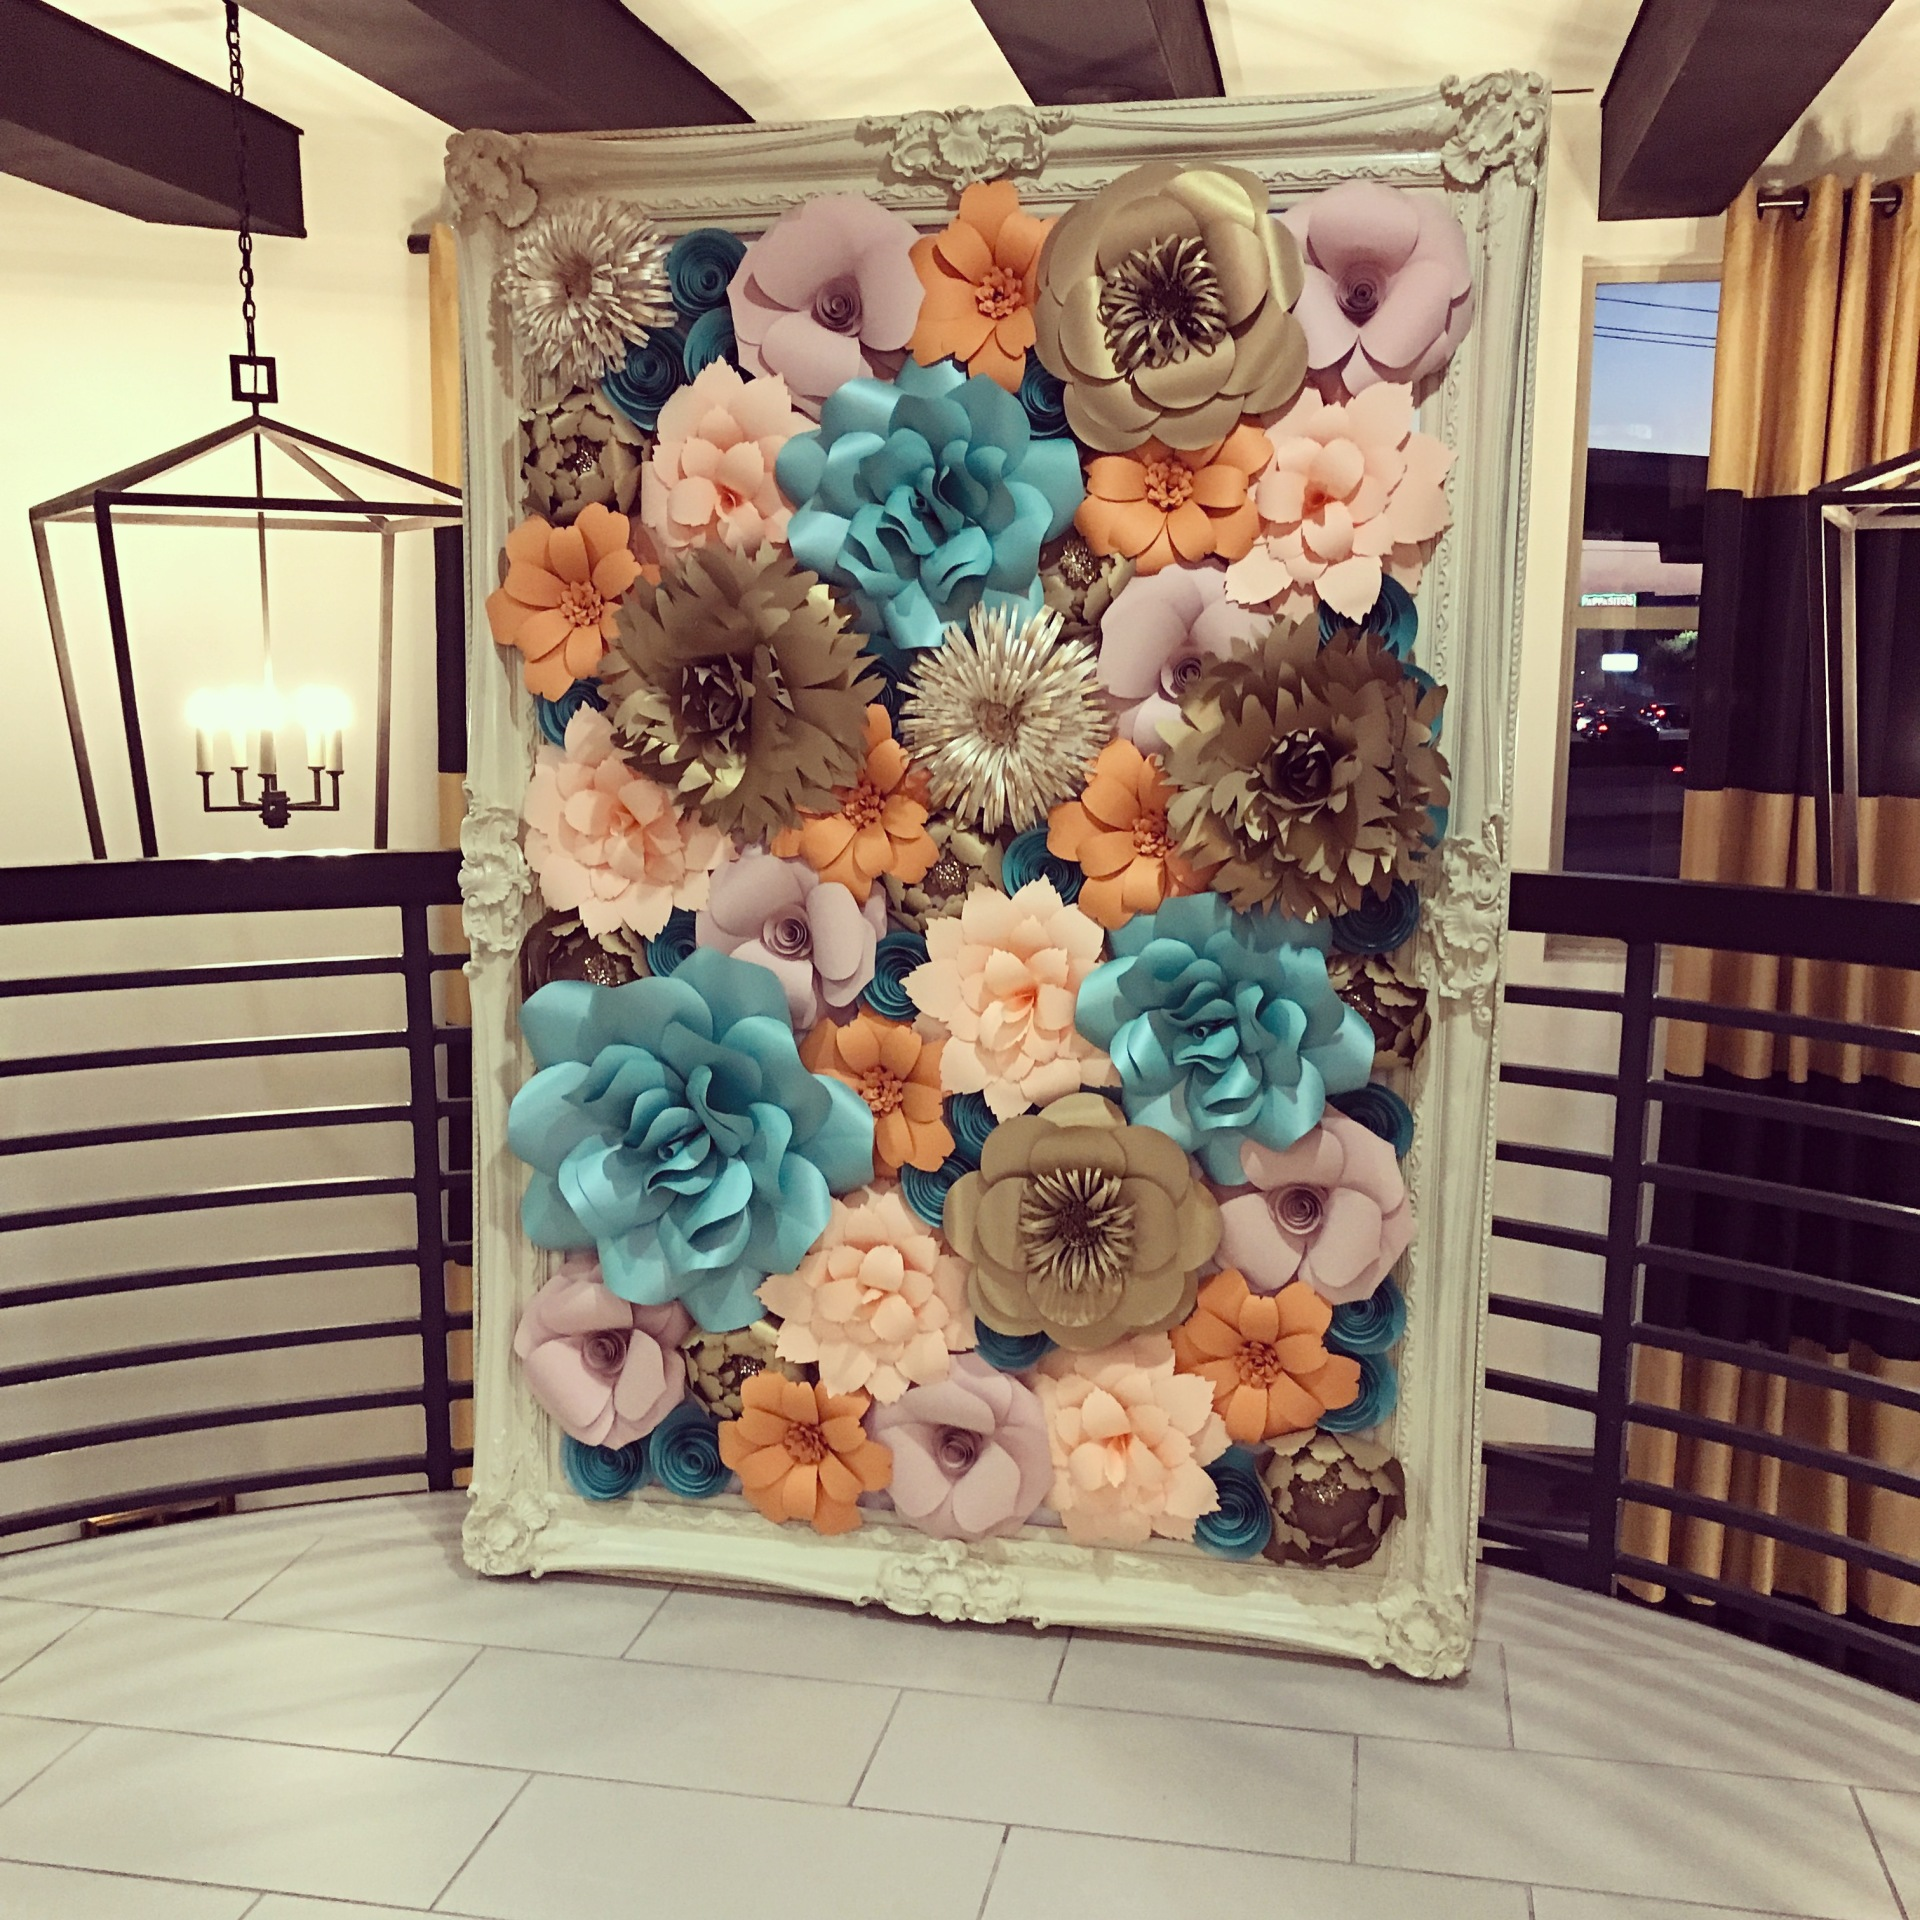 Event decor, wedding, wedding decor, HOUSTON wedding rental, corporate events, quinceanera, bridal shower, baby shower, photo backdrop, Houston Paper Flowers,